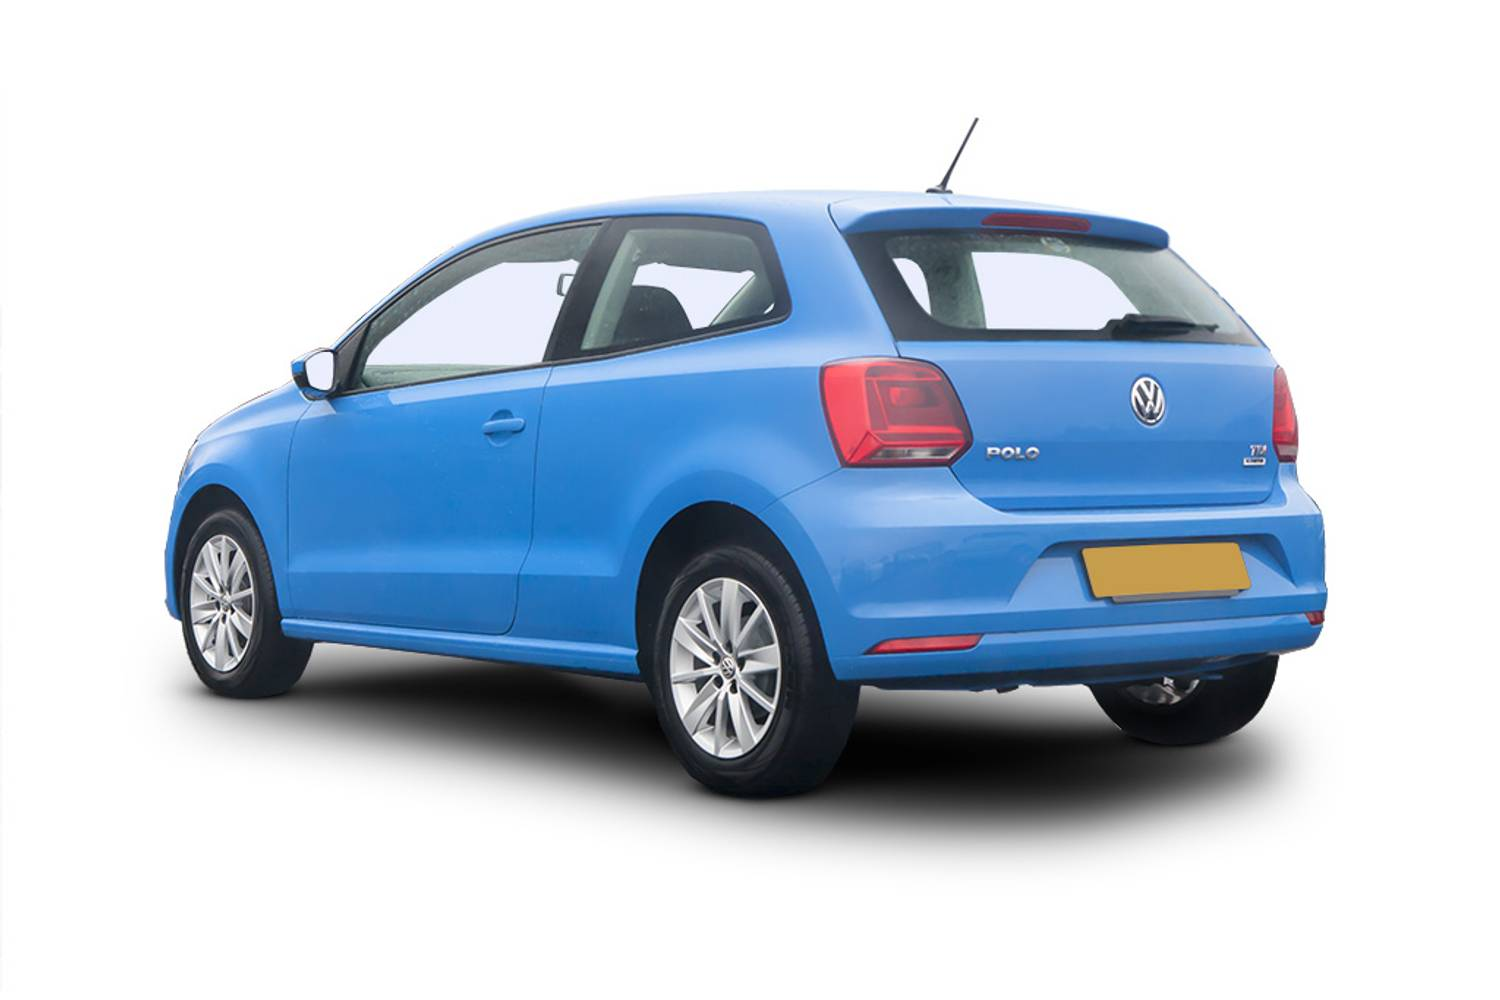 new volkswagen polo hatchback 1 4 tsi act bluegt 3 door 2014 for sale. Black Bedroom Furniture Sets. Home Design Ideas